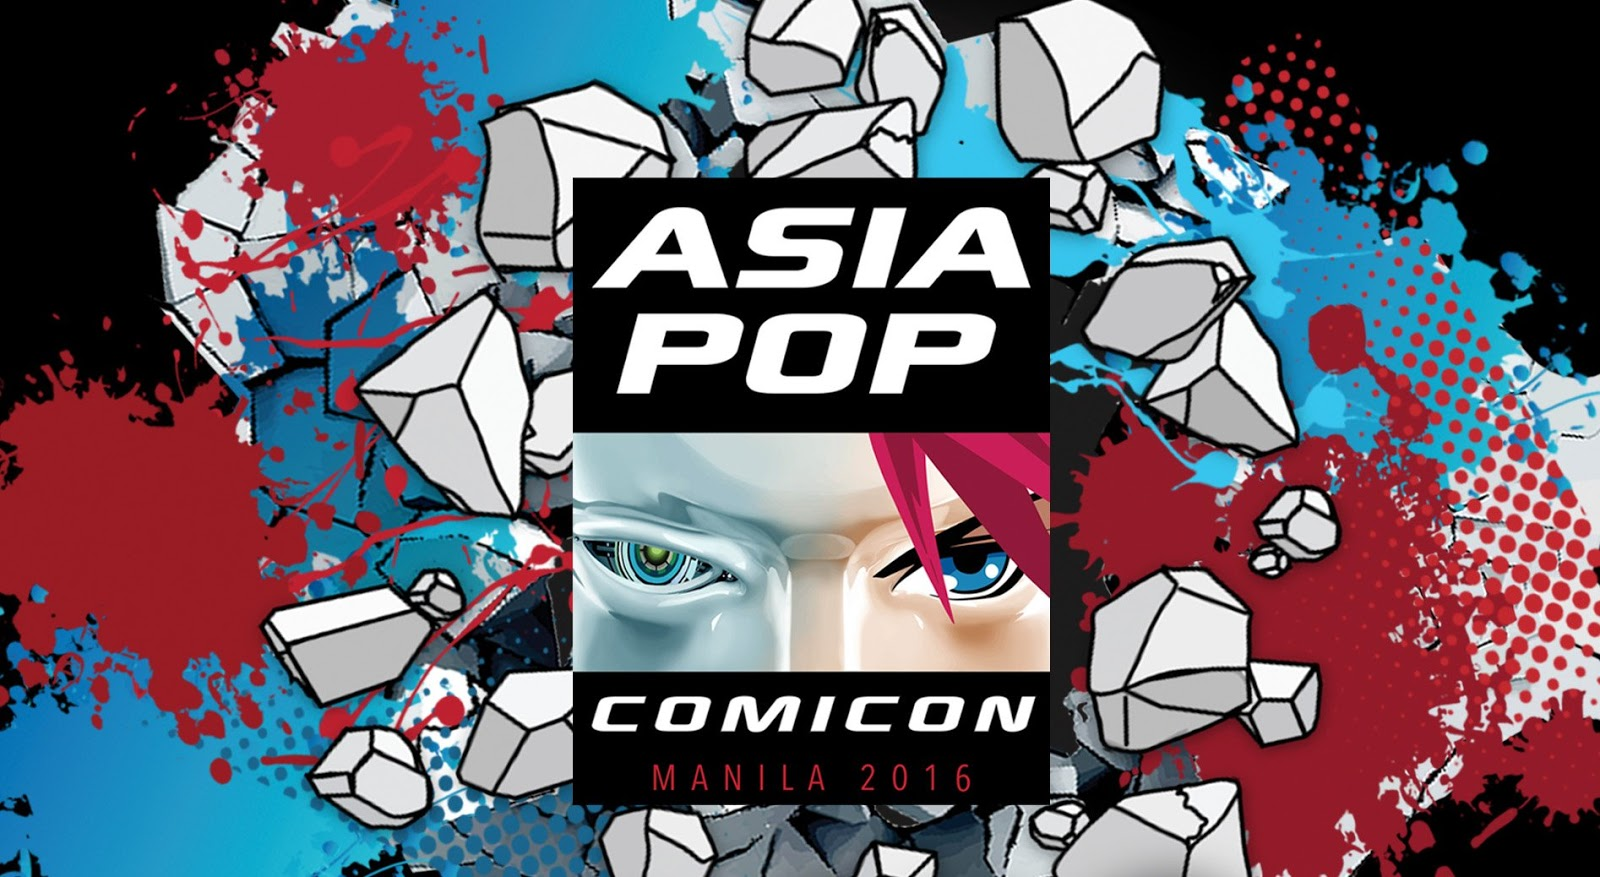 5 Things You Can't Miss In Asia Pop Comic Con 2016